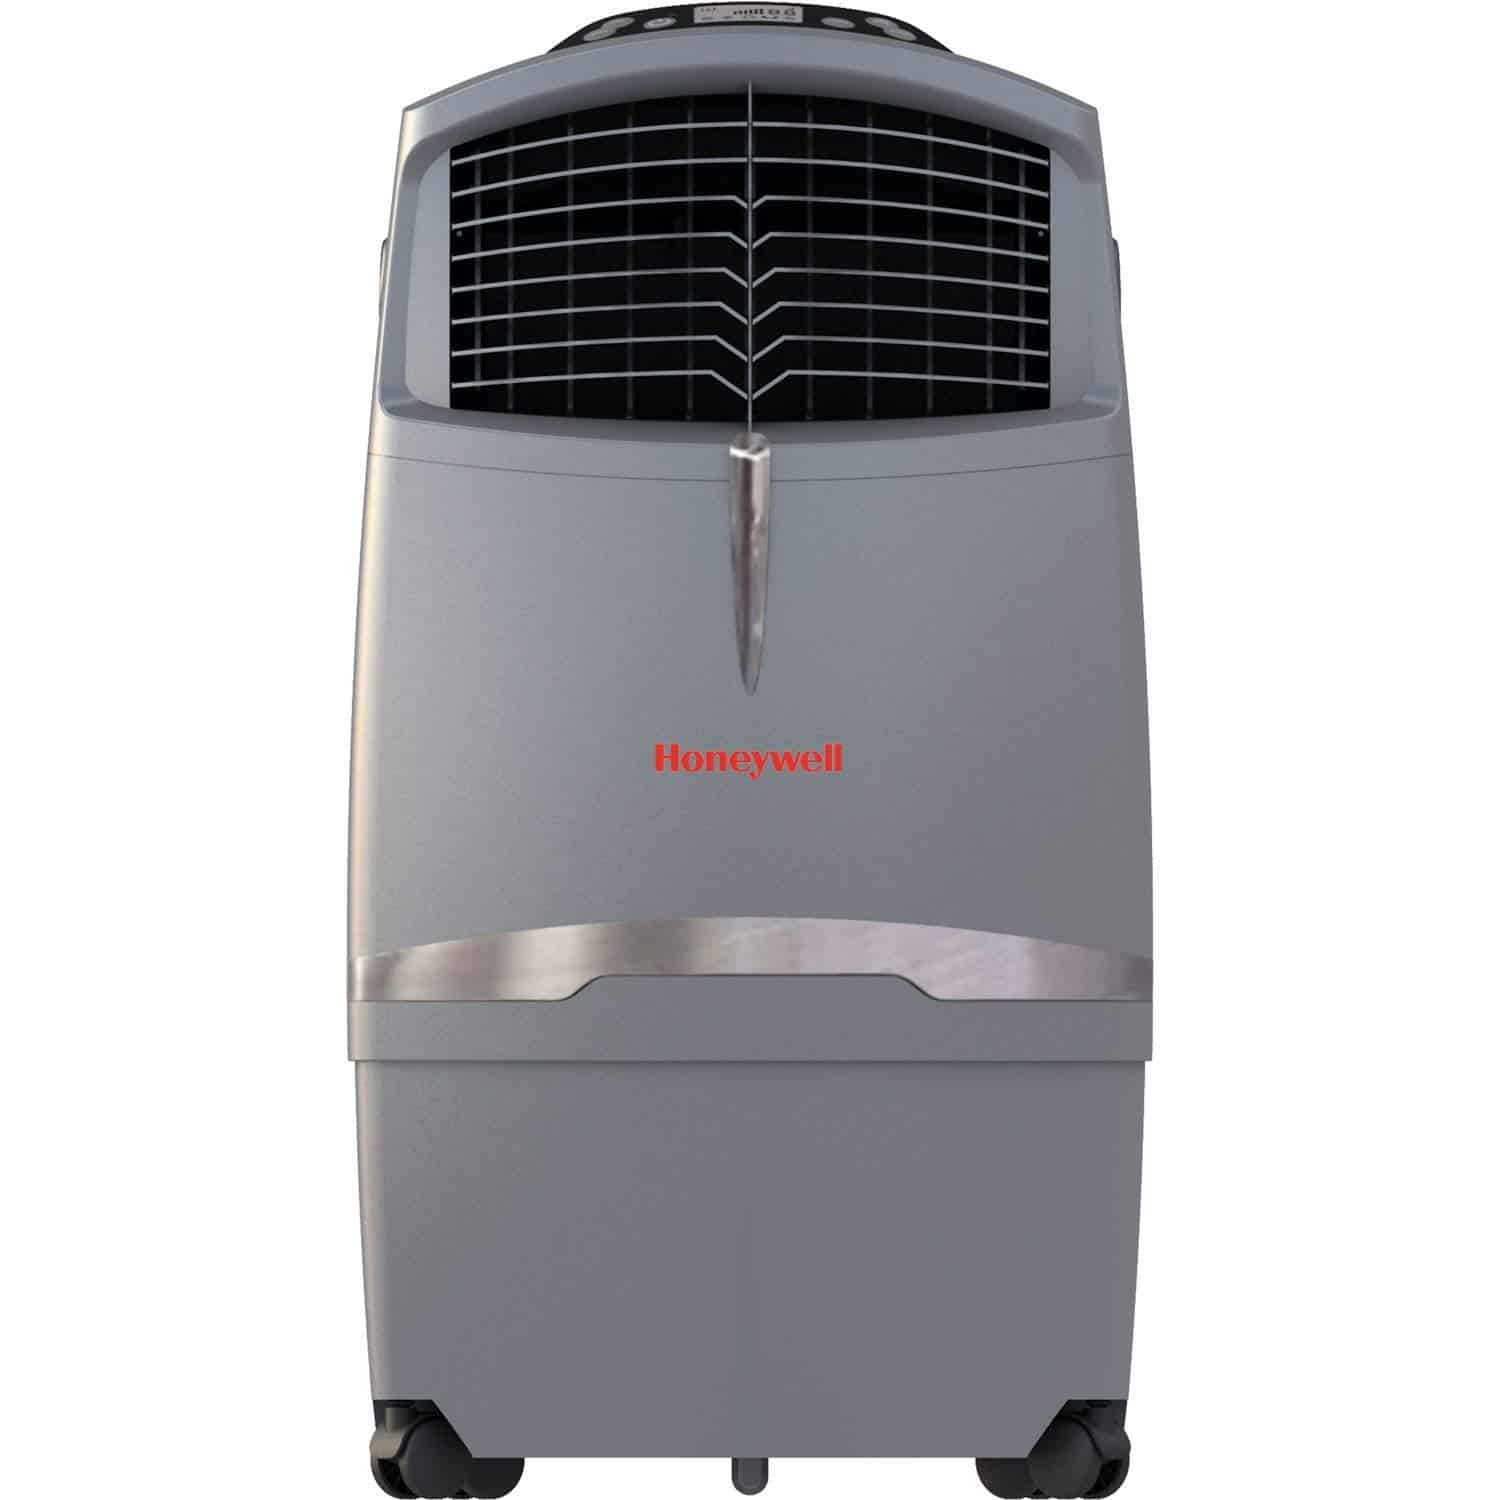 Honeywell 525 CFM Indoor Portable Evaporative Cooler